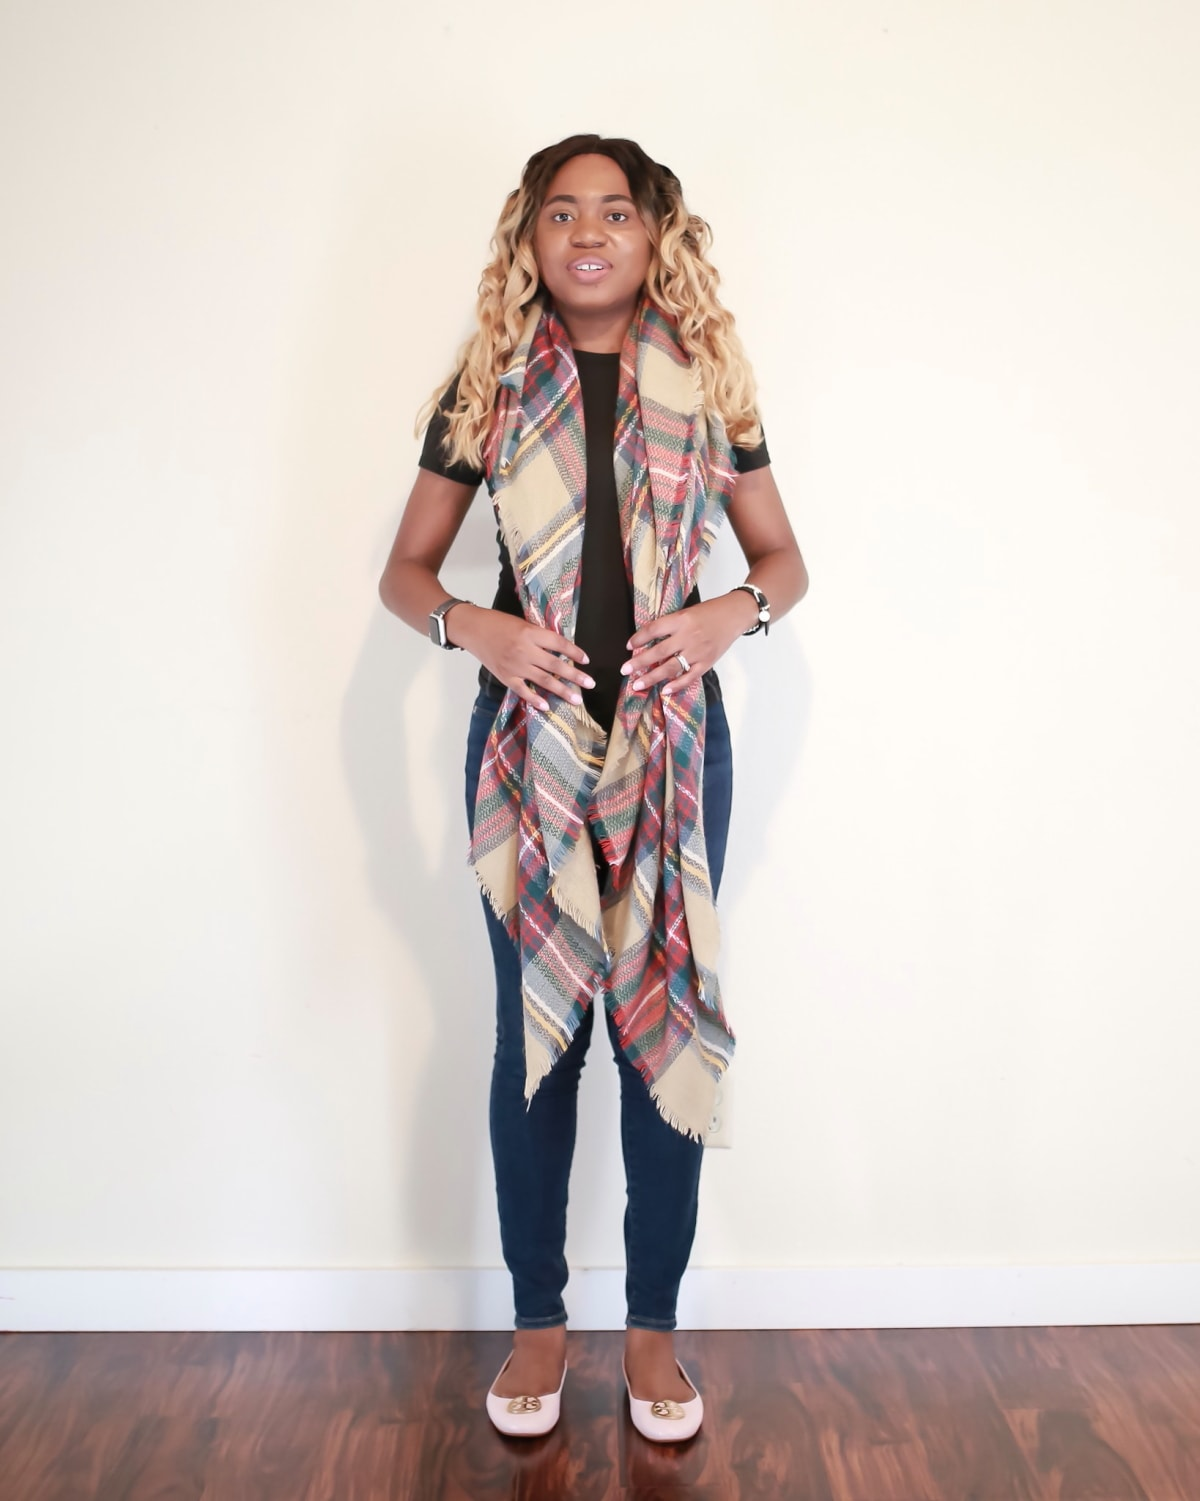 Whether you're a fan infinity scarves or simple rectangle scarves, you're going to love blanket scarves even more. Square scarves like large blanket scarves are stylish yet functional. Here are 5 simplest ways to tie a scarf this year.